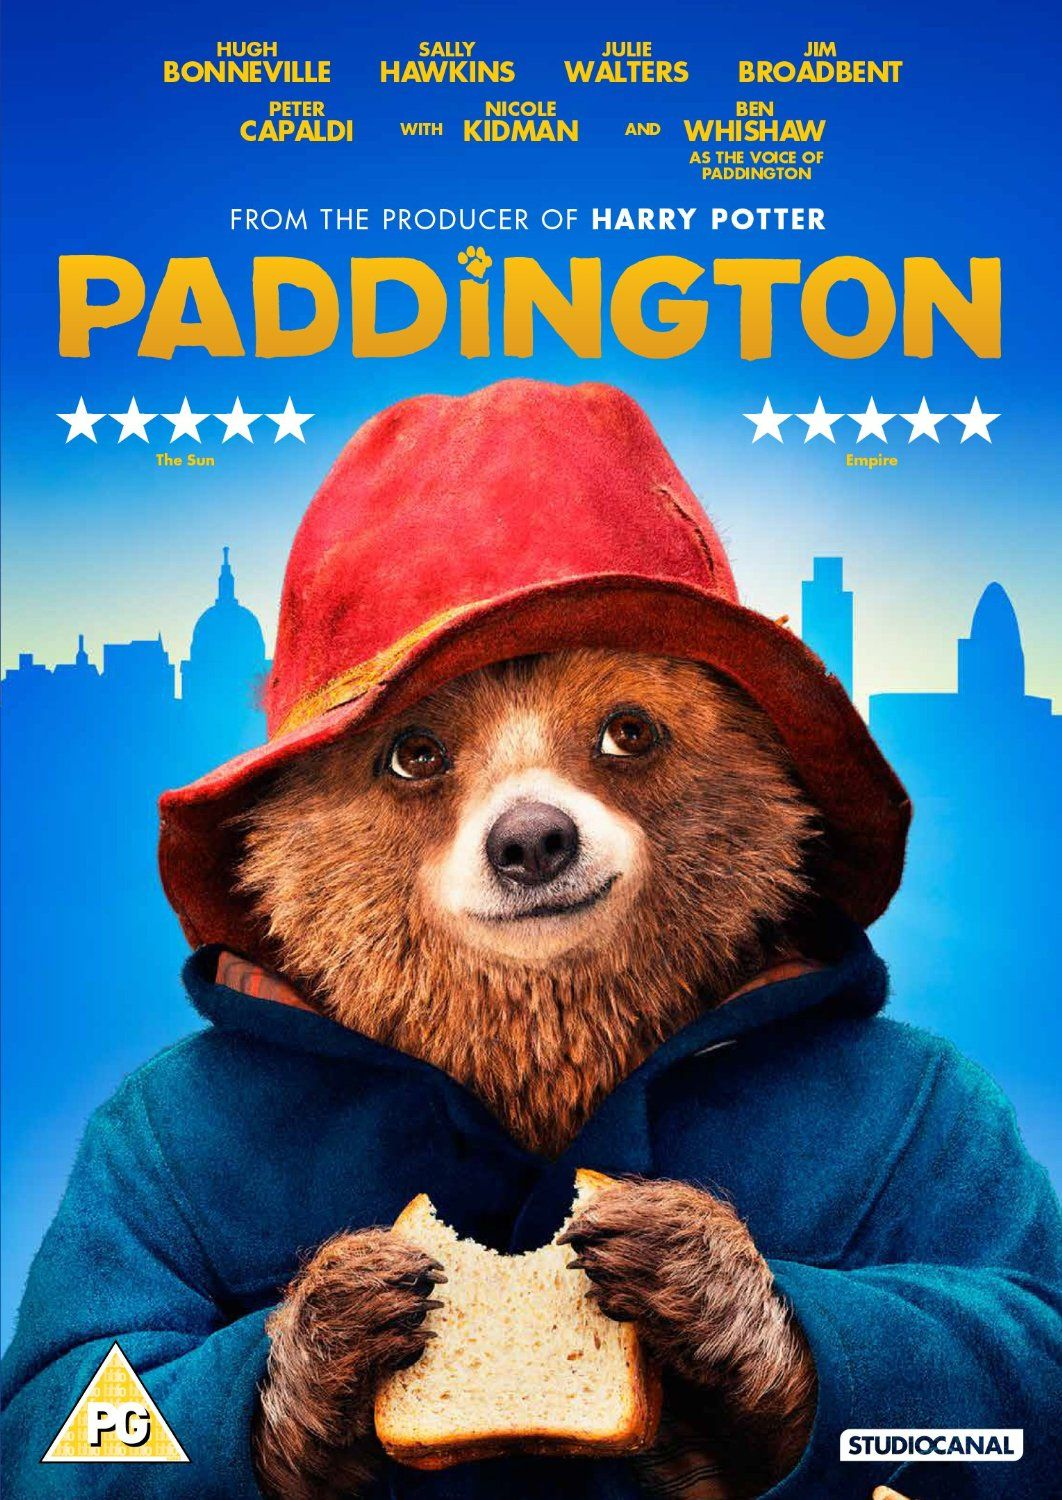 Paddington wallpapers, Movie, HQ Paddington pictures | 4K Wallpapers